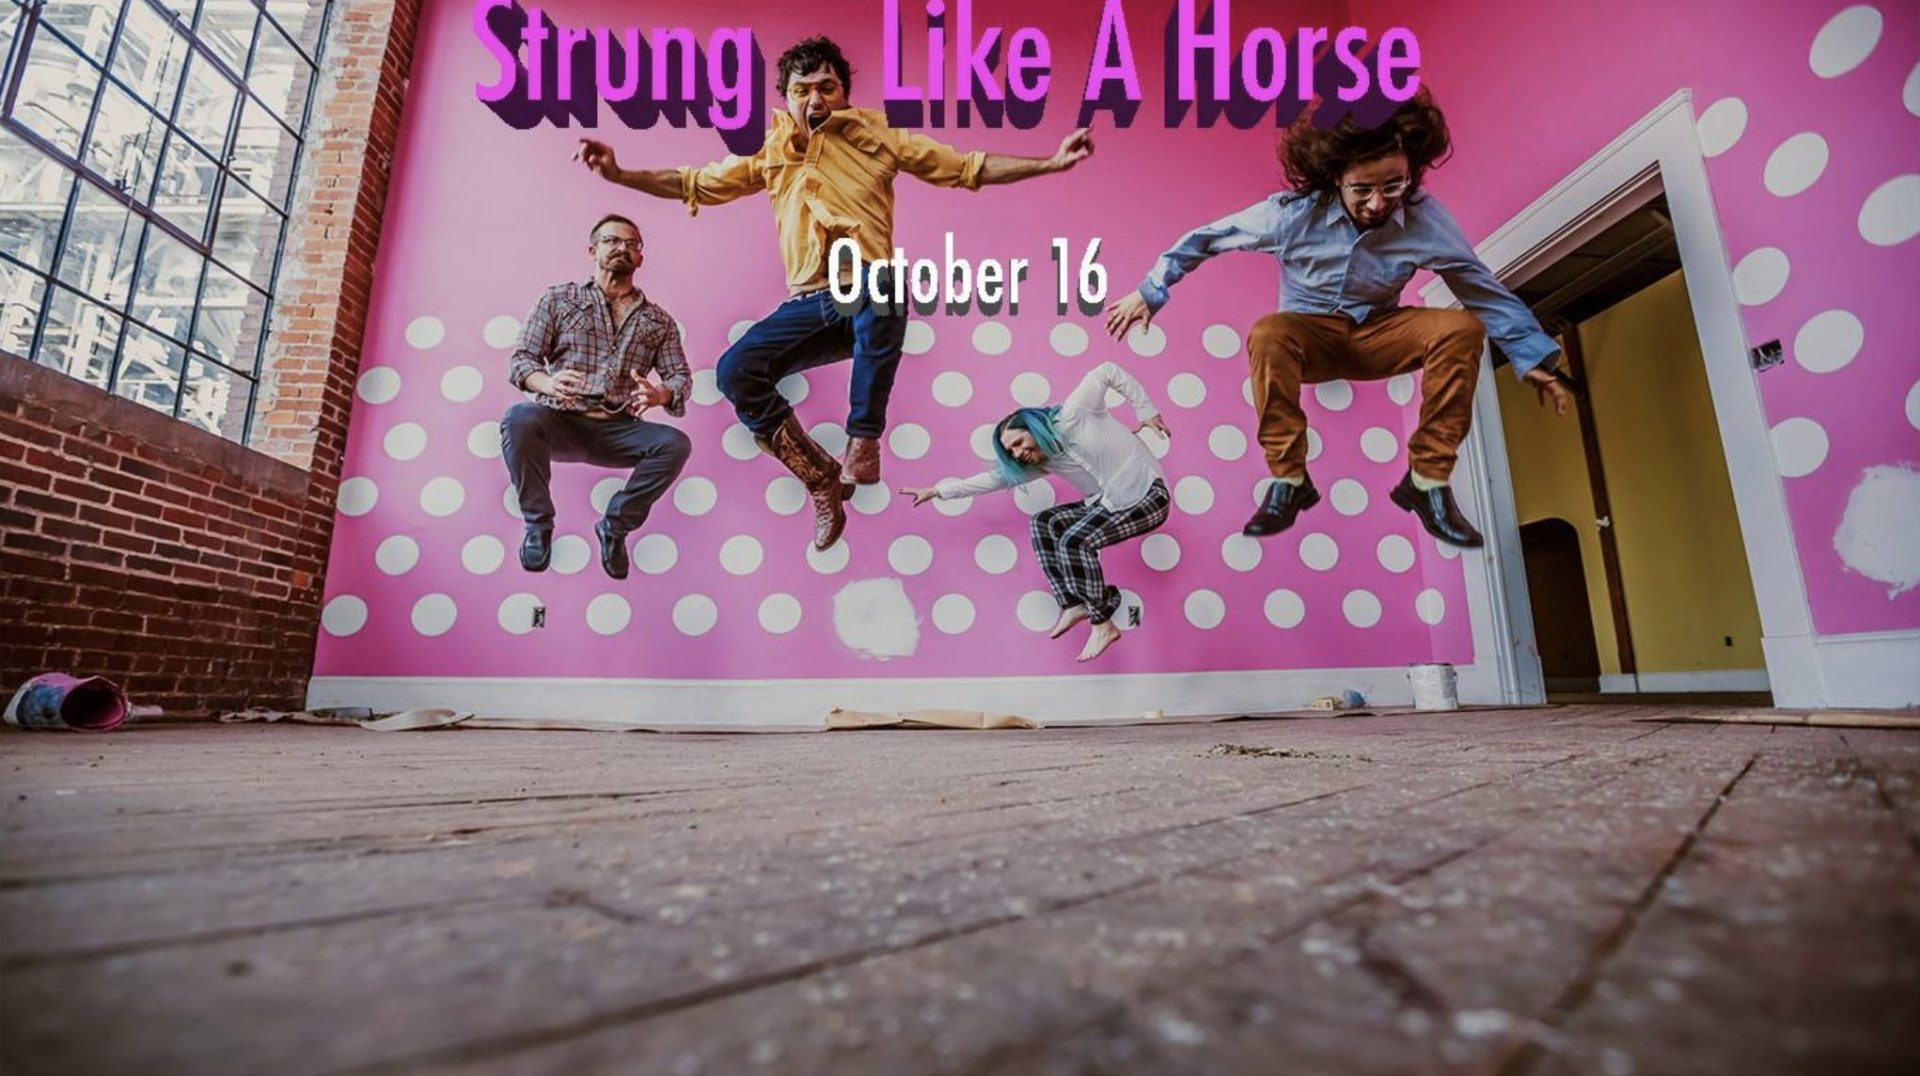 LIVE MUSIC: Strung Like a Horse